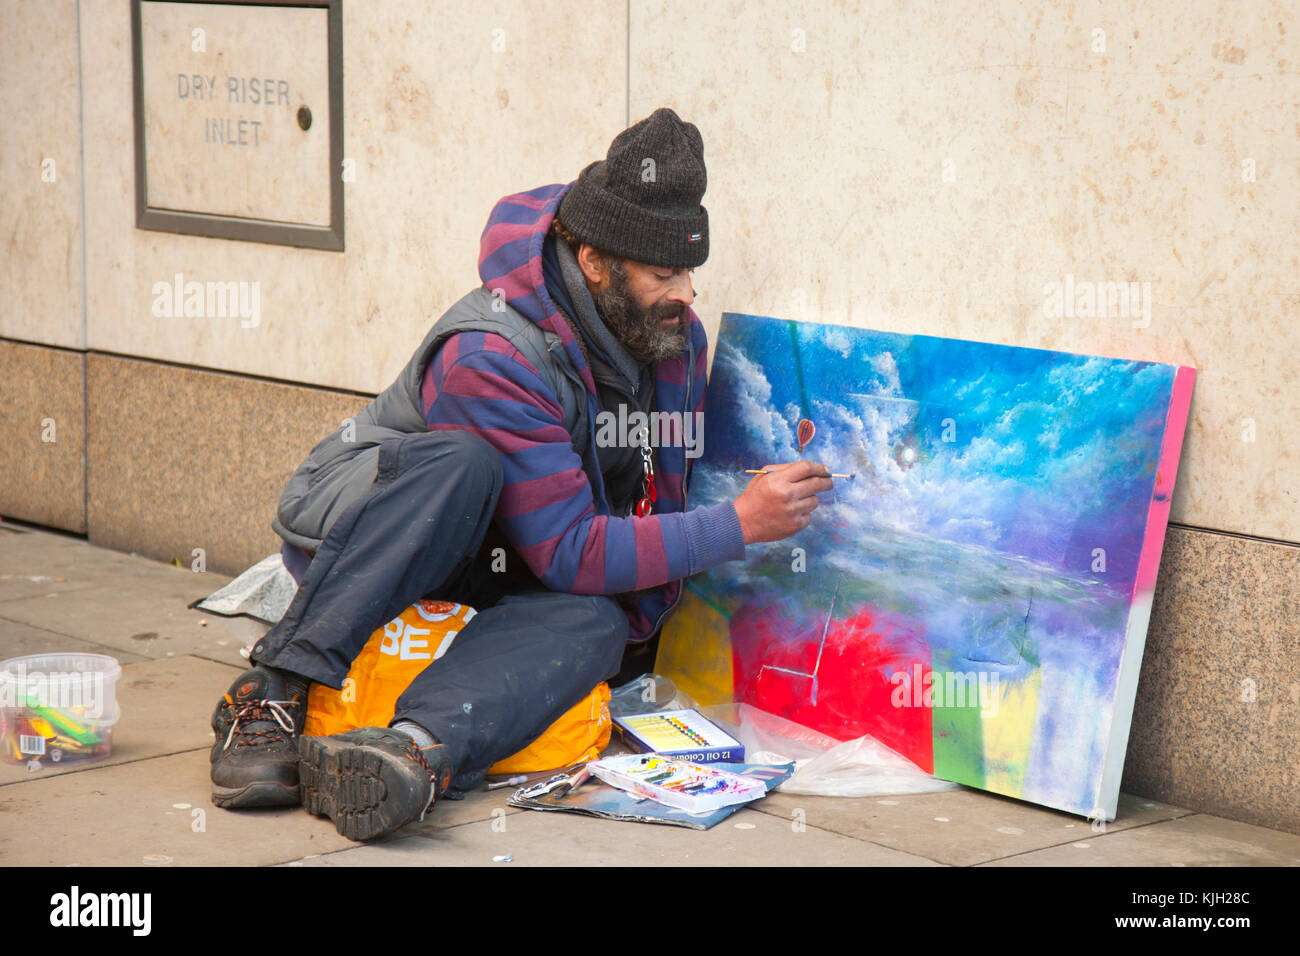 Manchester, UK. 24th Nov, 2017. Homeless man, a street artist in the city centre on Black Friday which has become Stock Photo